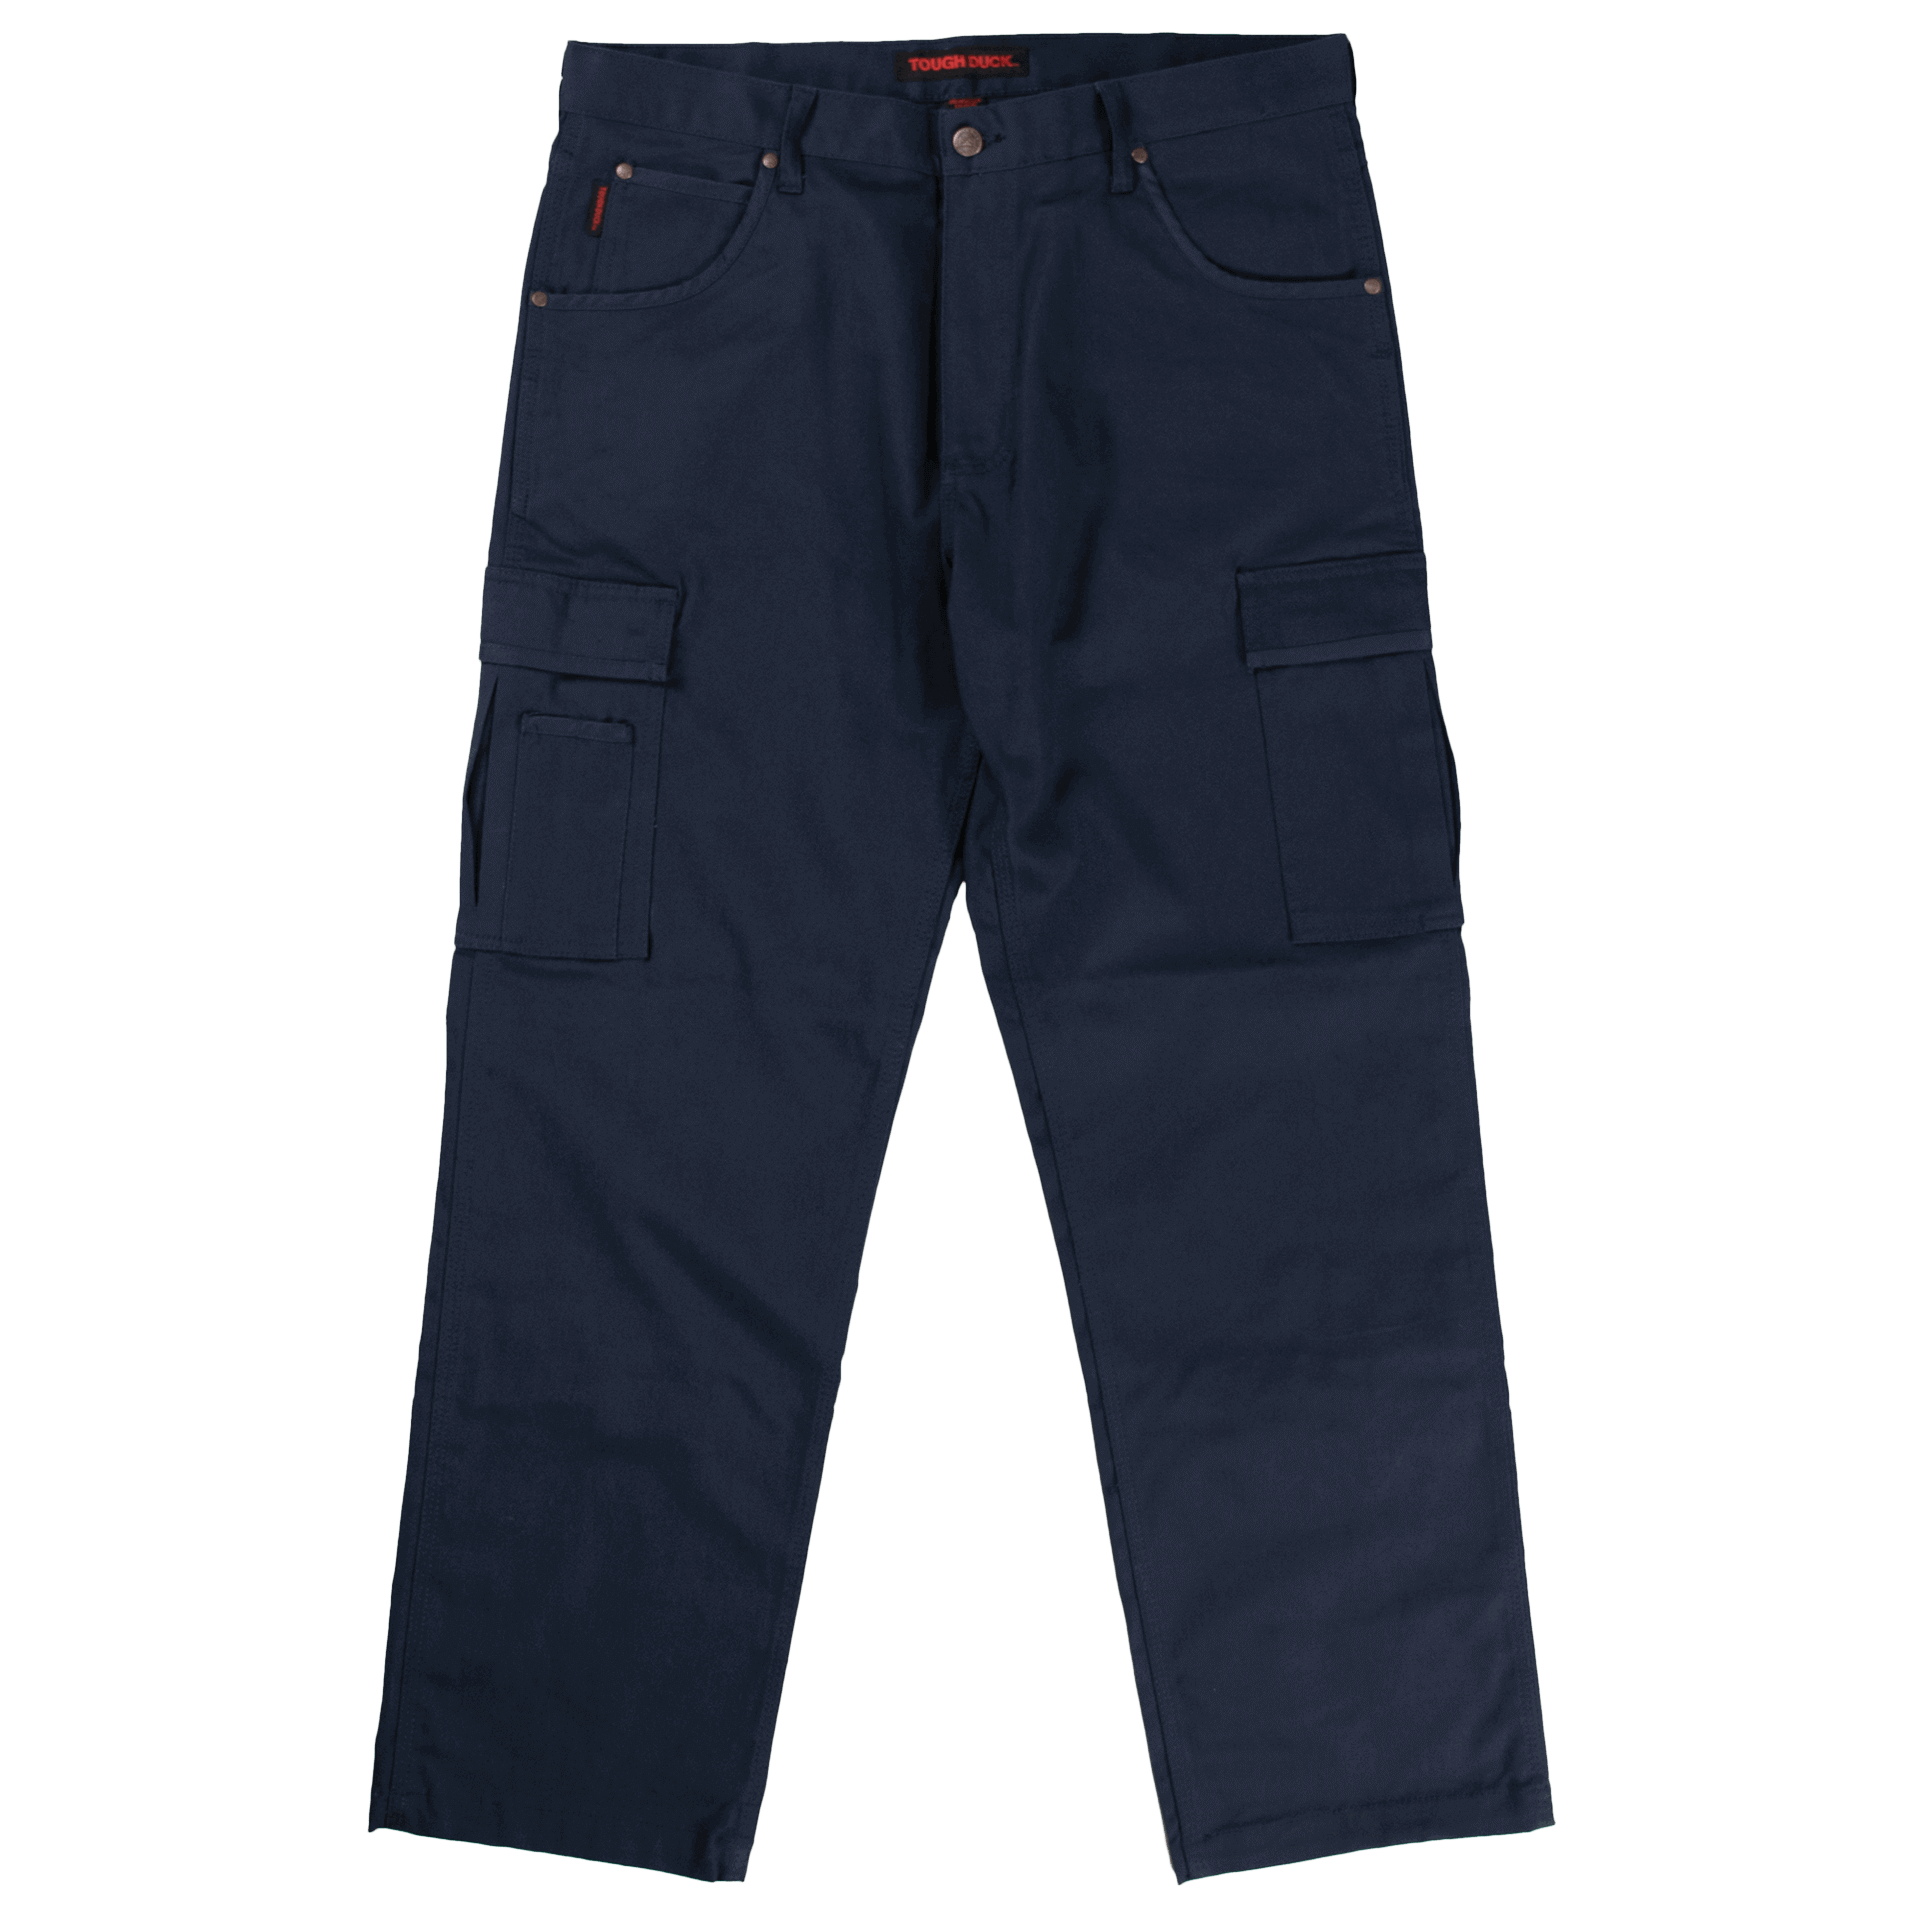 Tough Duck Stretch Twill Cargo Pant - 6010